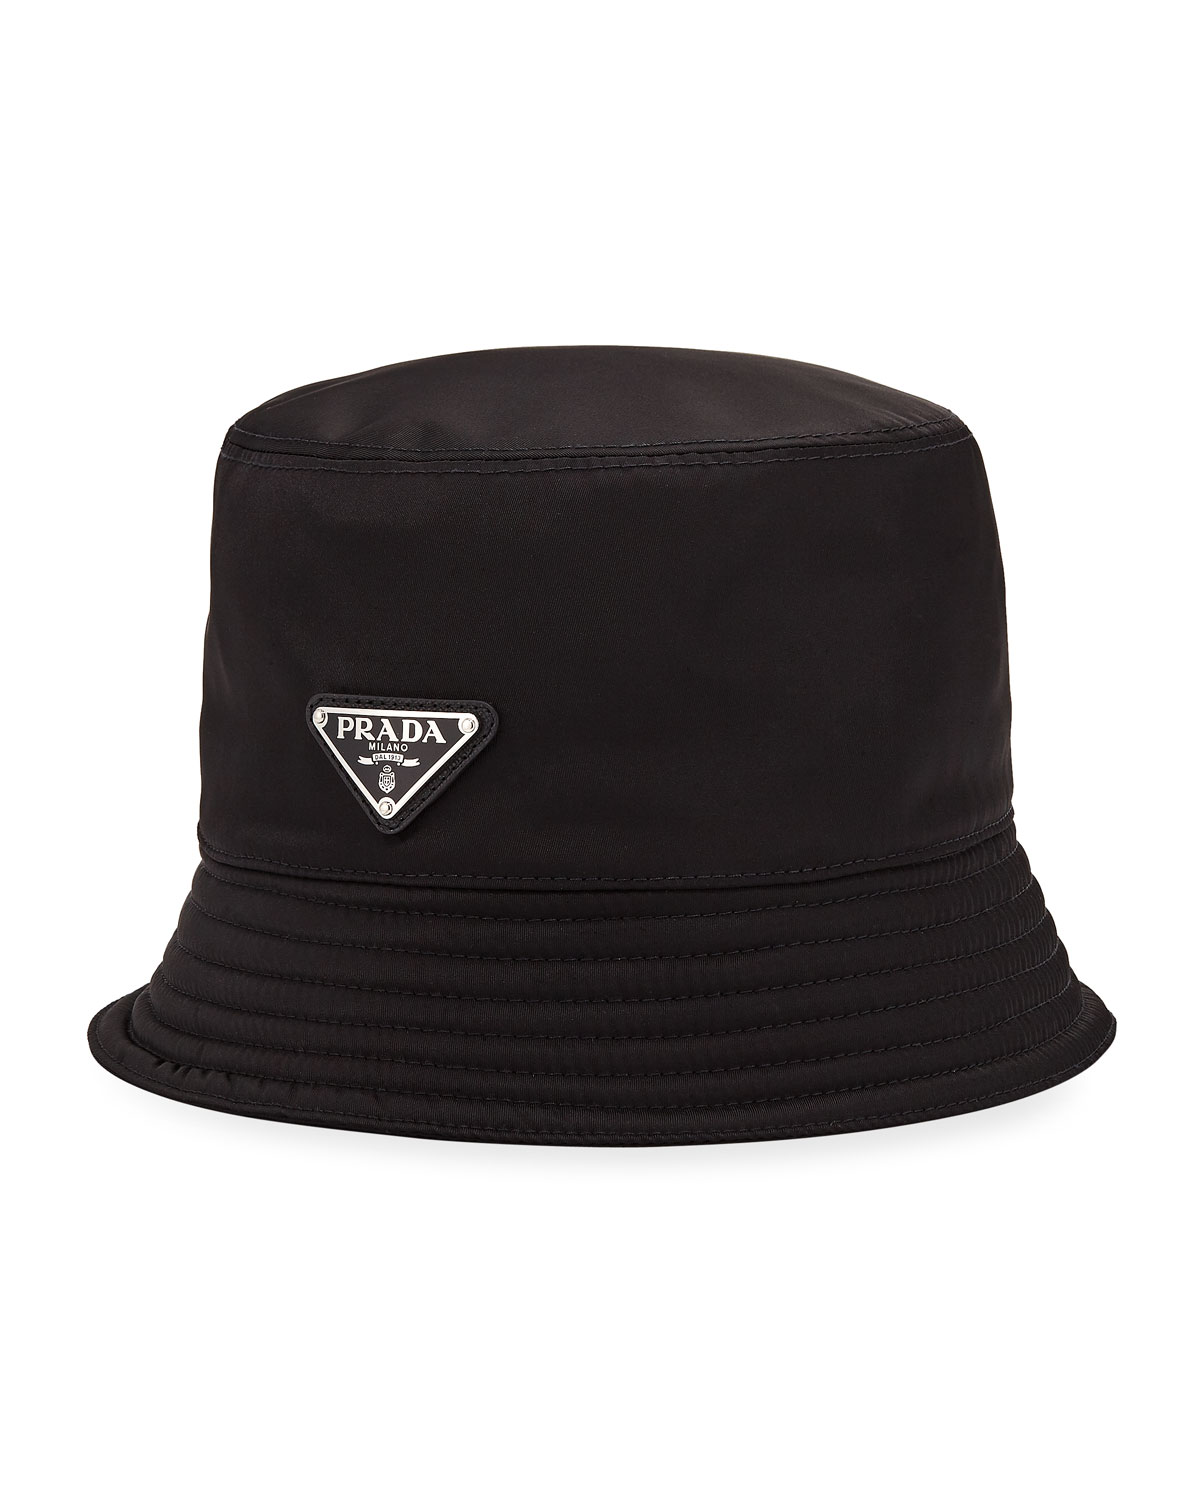 9e8b1a92d4c Prada Men s Nylon Bucket Hat with Logo